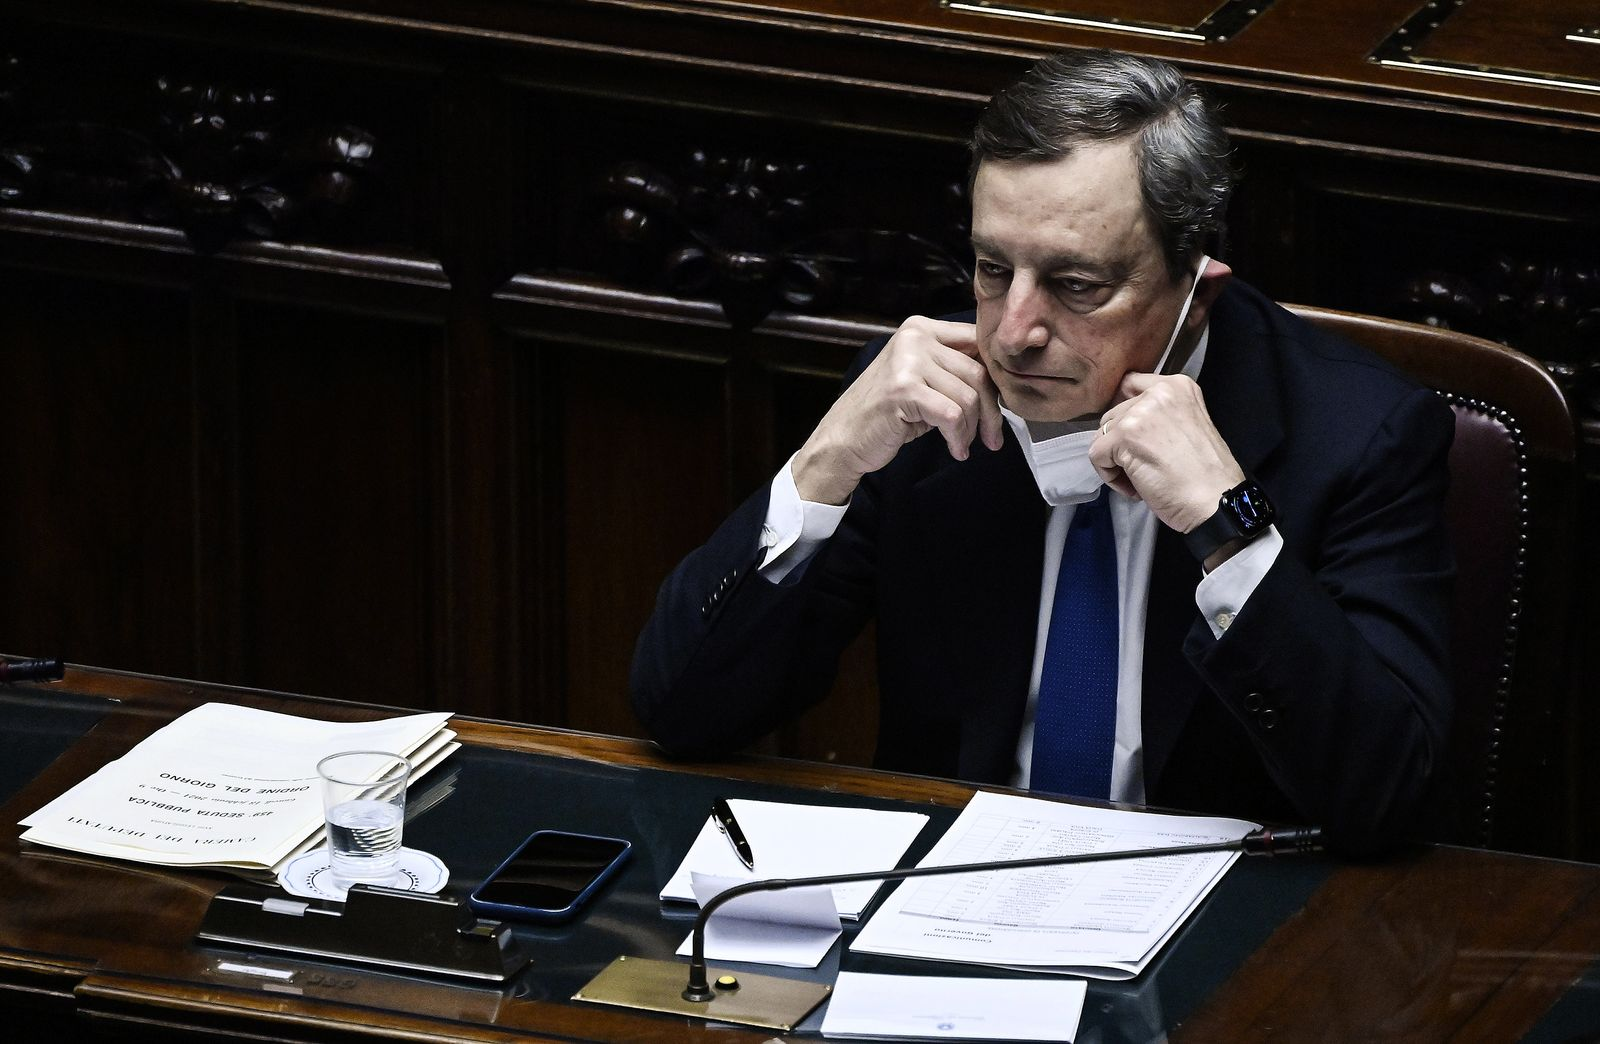 Confidence vote at the Chamber on PM Draghi's government, Rome, Italy - 18 Feb 2021